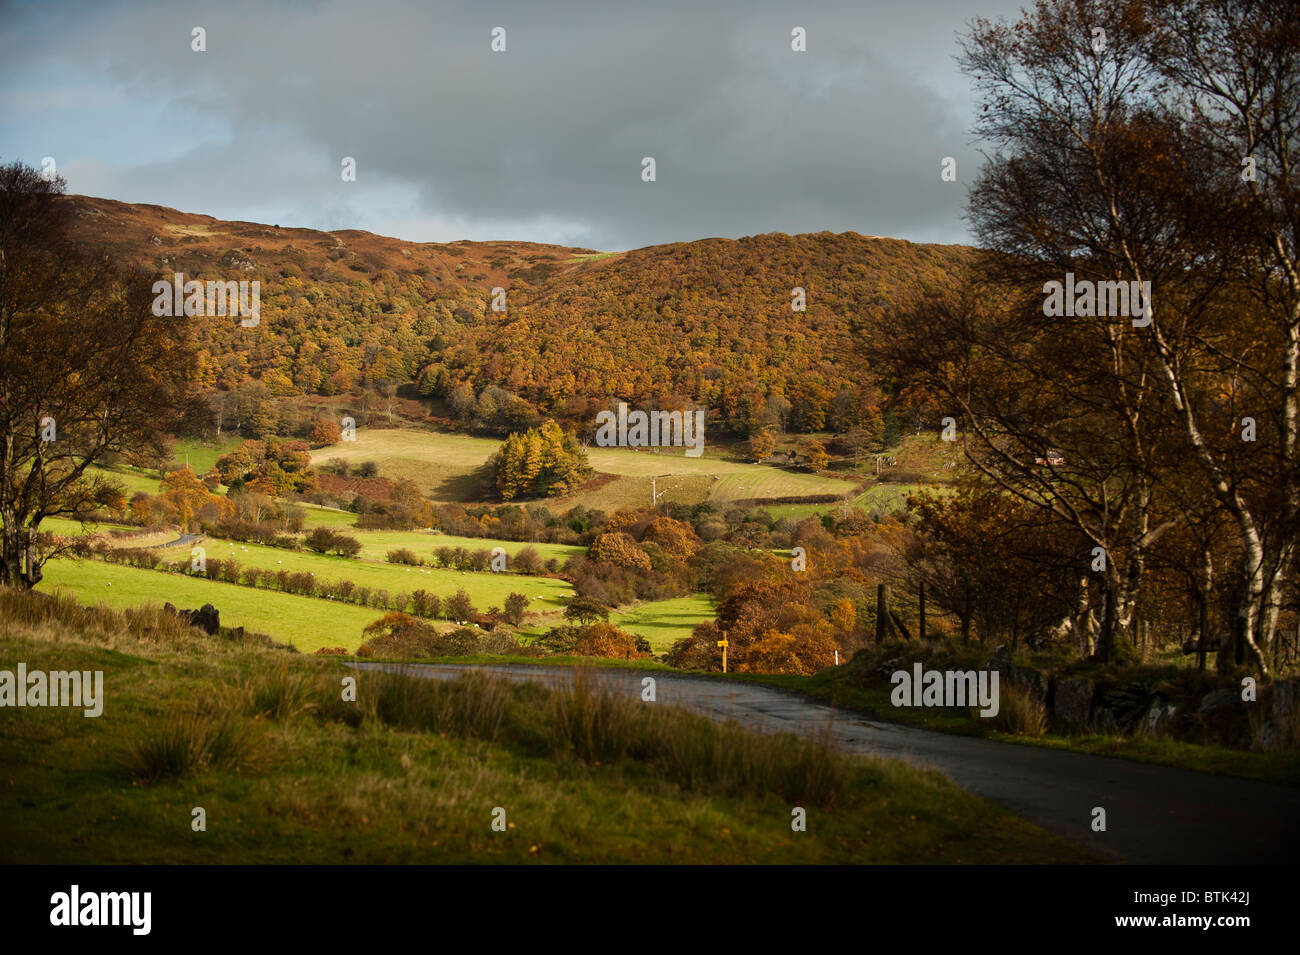 autumn afternoon, rural landscape, Cwm Marteg, near Rhayader, Powys mid wales uk - Stock Image